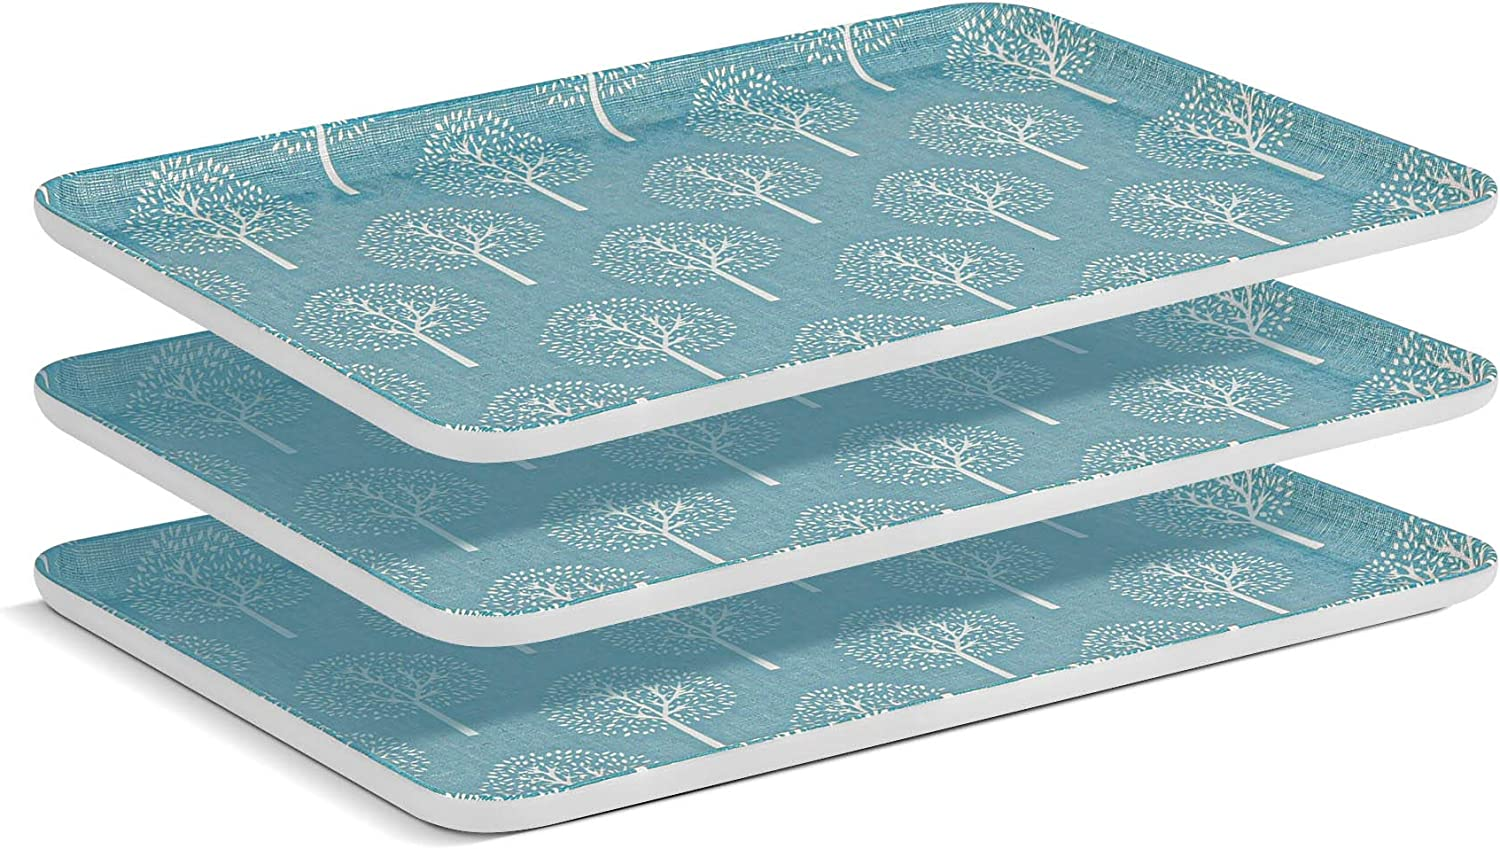 ComSaf Serving Tray Food-Grade Melamine 13 x 9 Inch (3pcs), Serving Platters Rectangle Food Tray, Plastic Decorative Non-Slip Serve Tray for Coffee Table, Kitchen, Restaurant,Party, Buffet, Blue